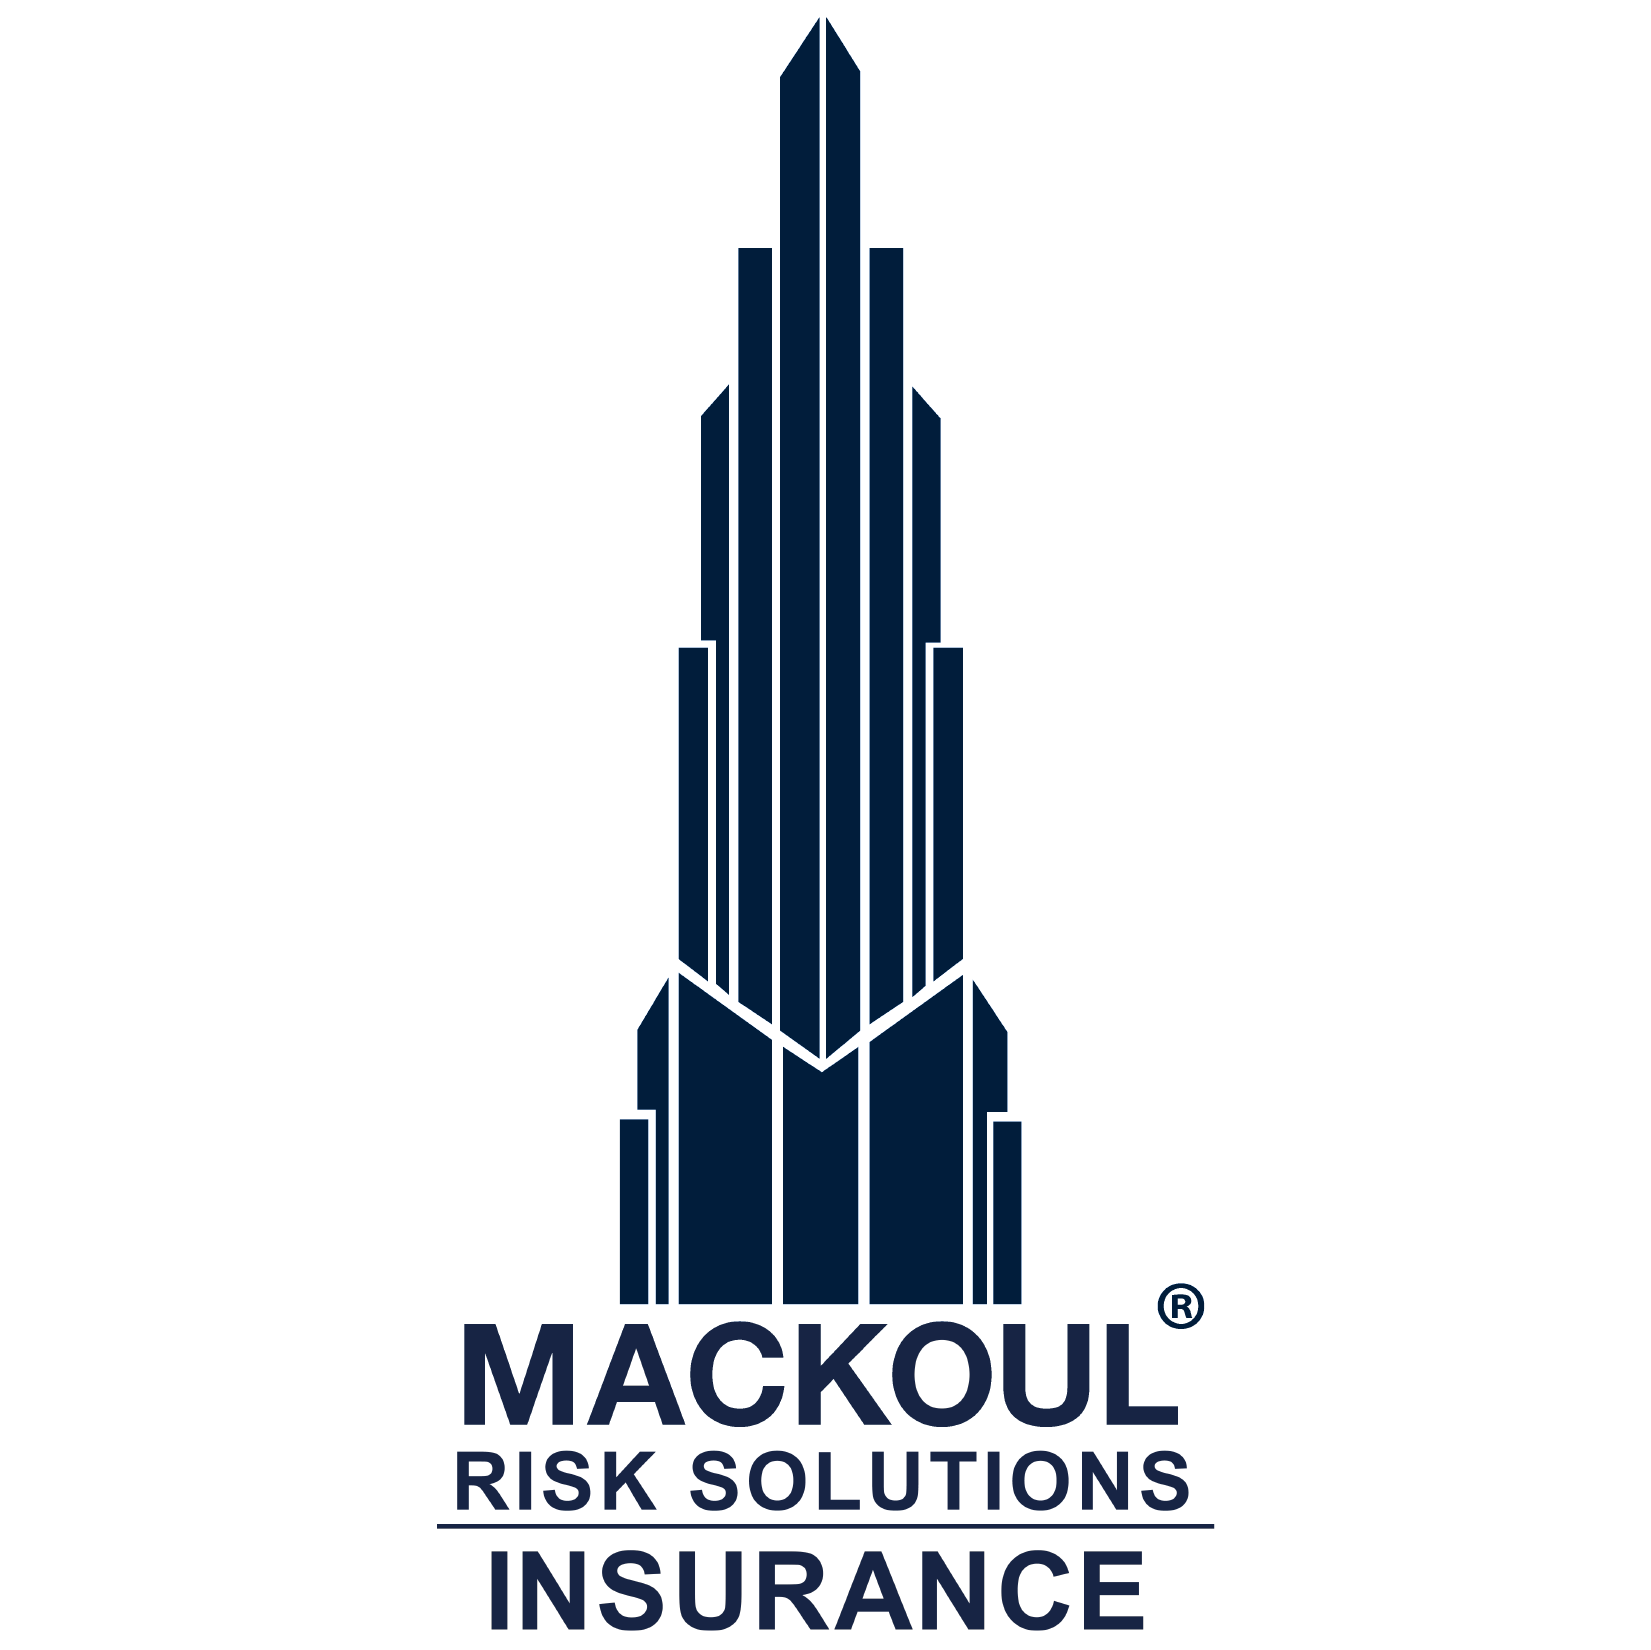 Mackoul Risk Solutions, LLC